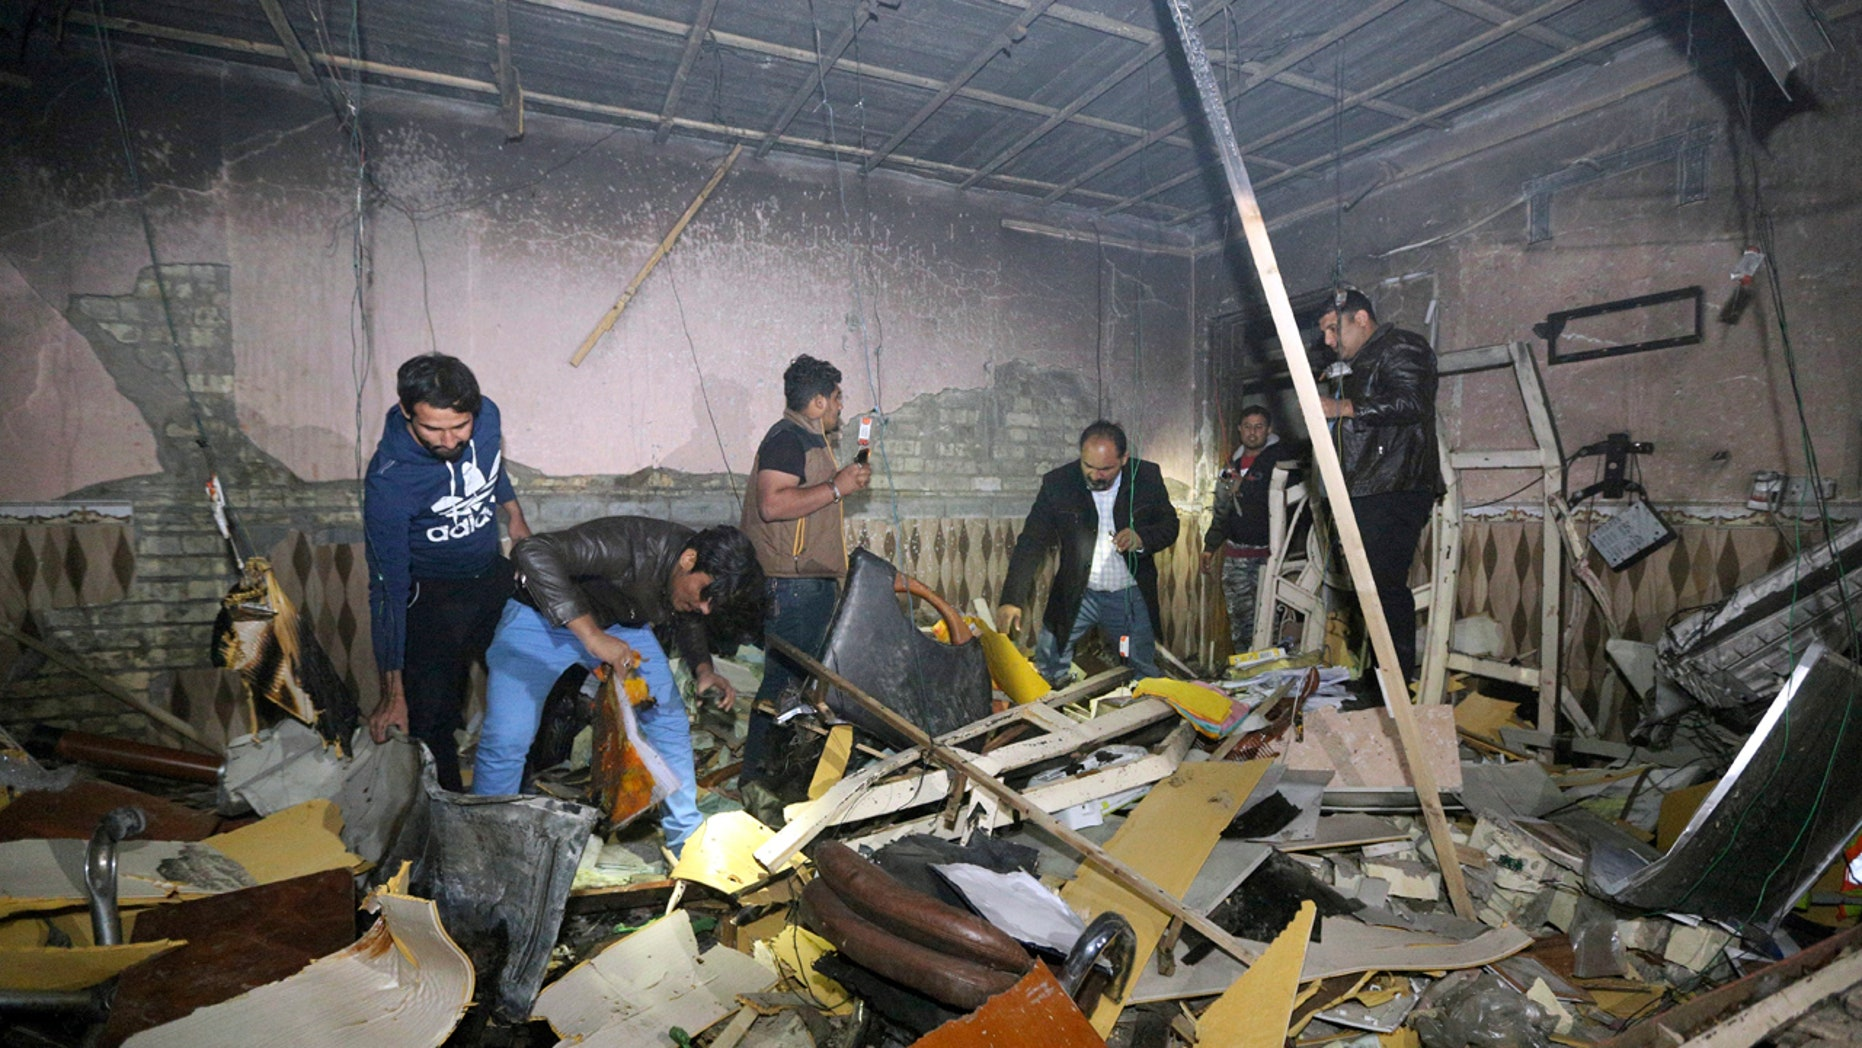 Civilians search for survivors in the rubble at the scene of a car bomb attack near the city of Hilla about 95 kilometers (60 miles) south of Baghdad, Iraq, Thursday, Nov. 24, 2016.